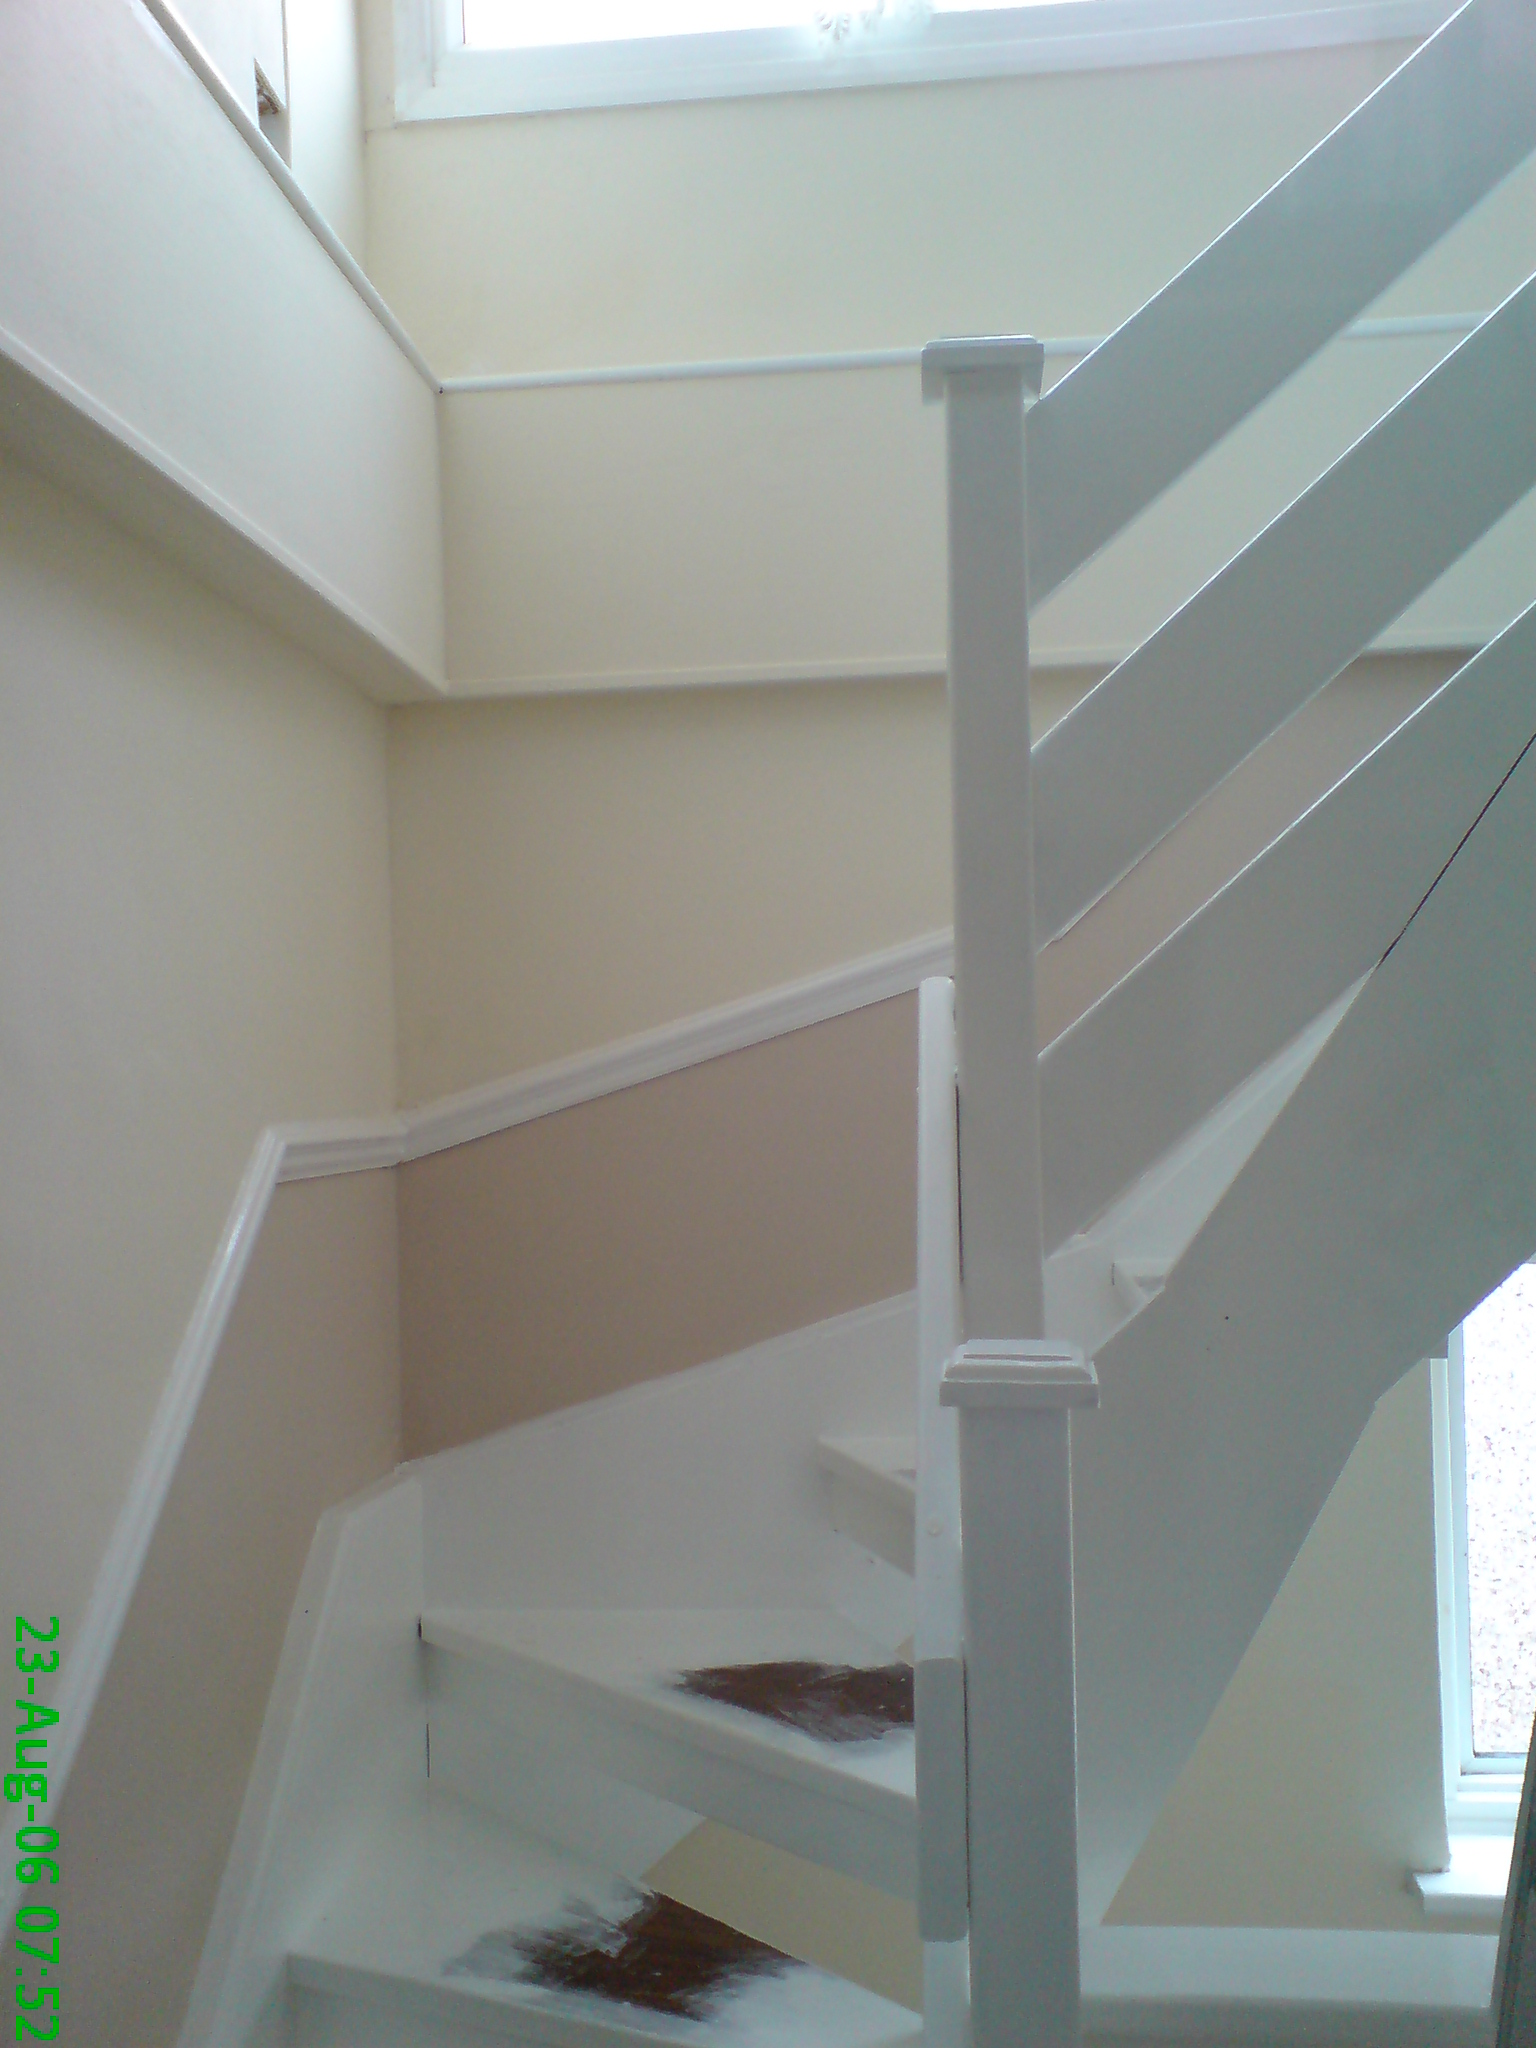 Loft stairs after